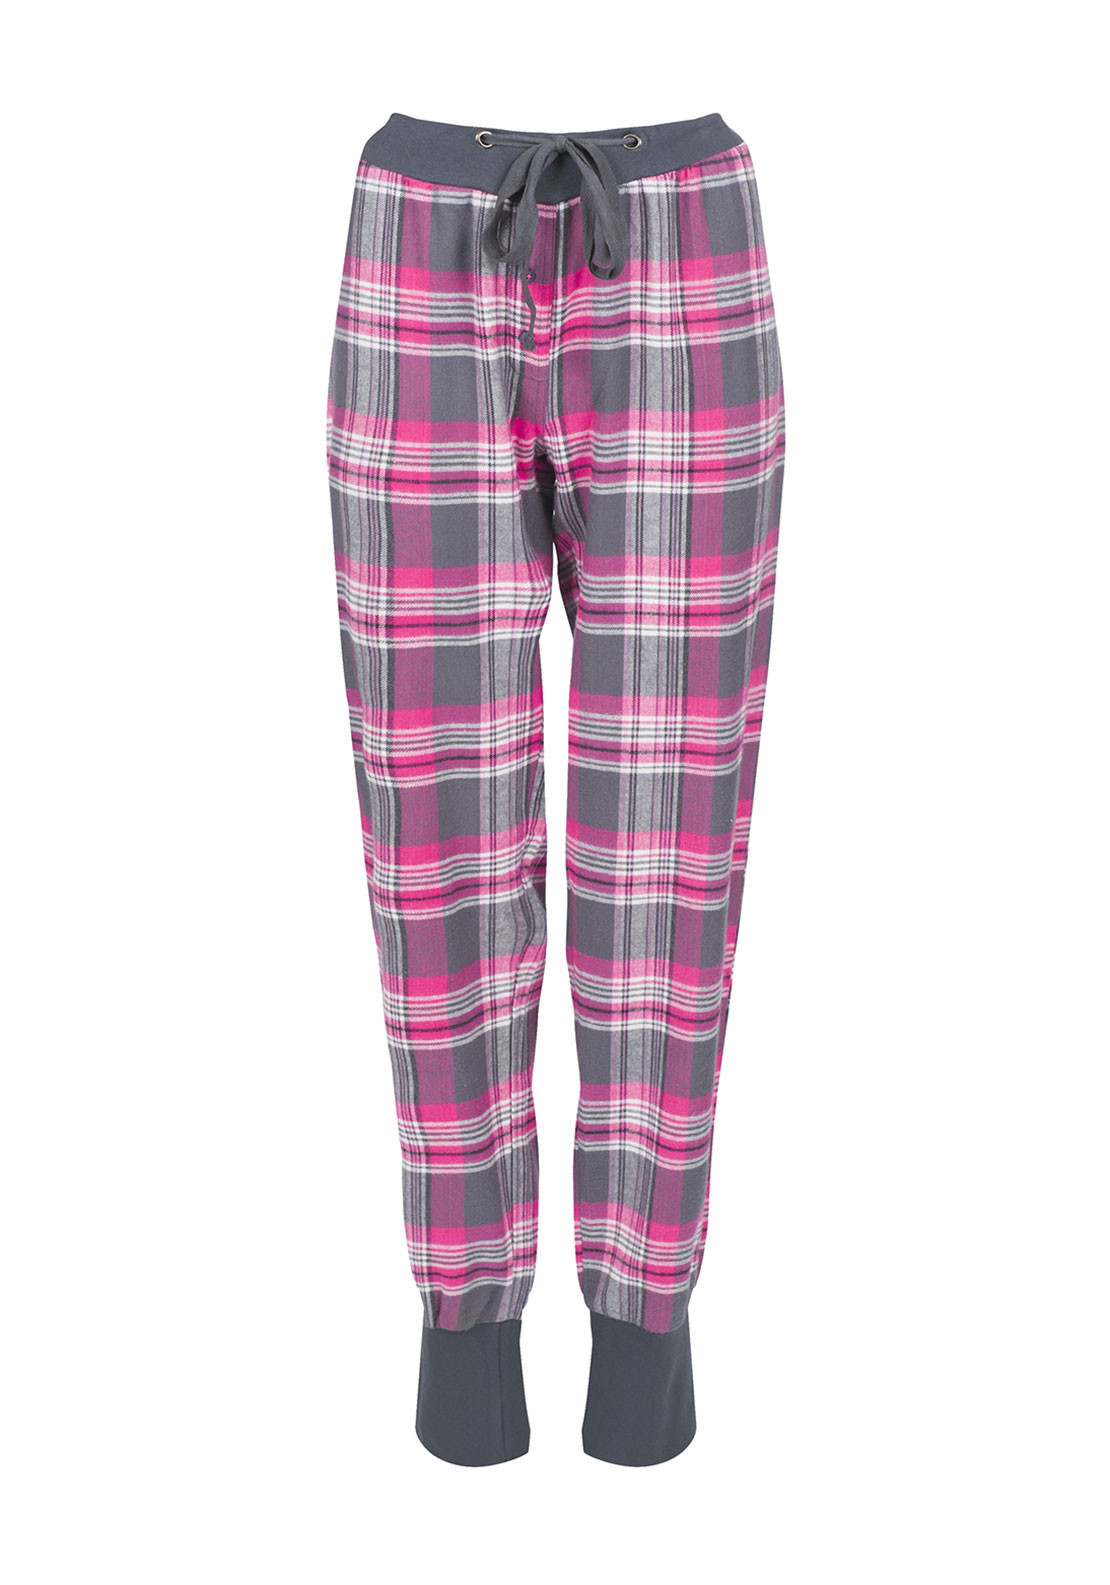 Rebelle Checked Brushed Cotton Pyjama Bottoms, Grey and Pink